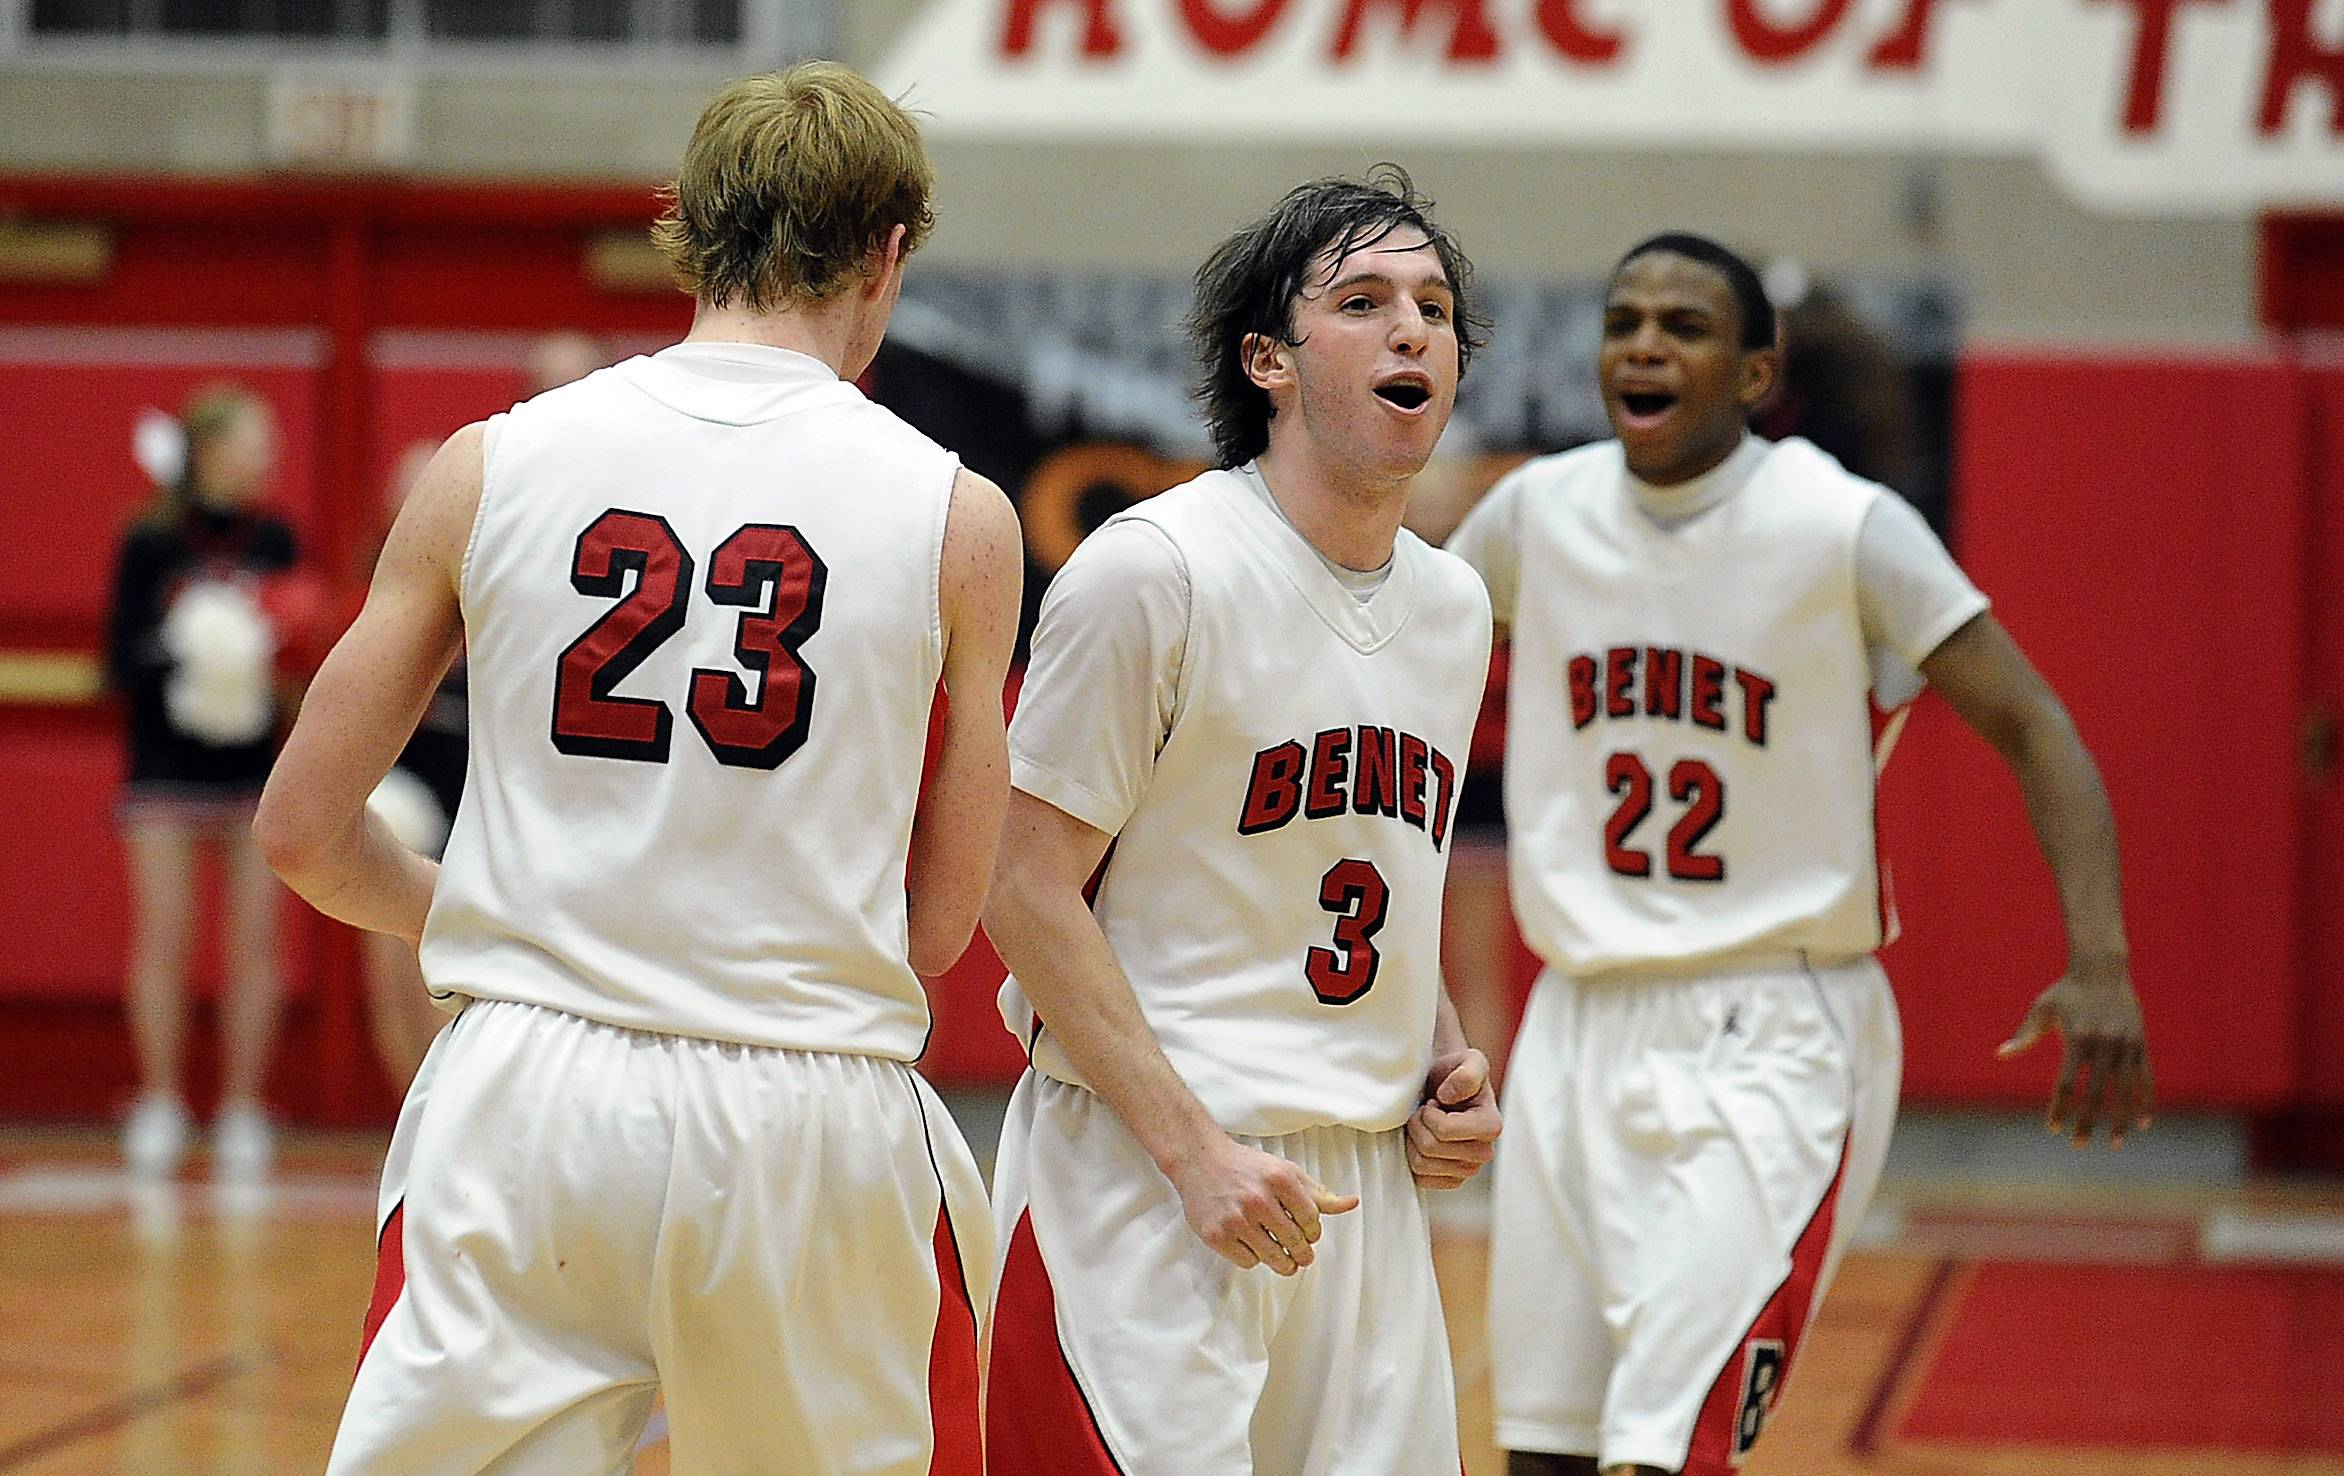 Benet's Colin Bonnett, Collin Pellettieri and Josh Yesufu begin the celebration at the end of Tuesday's supersectional victory at Hinsdale Central.